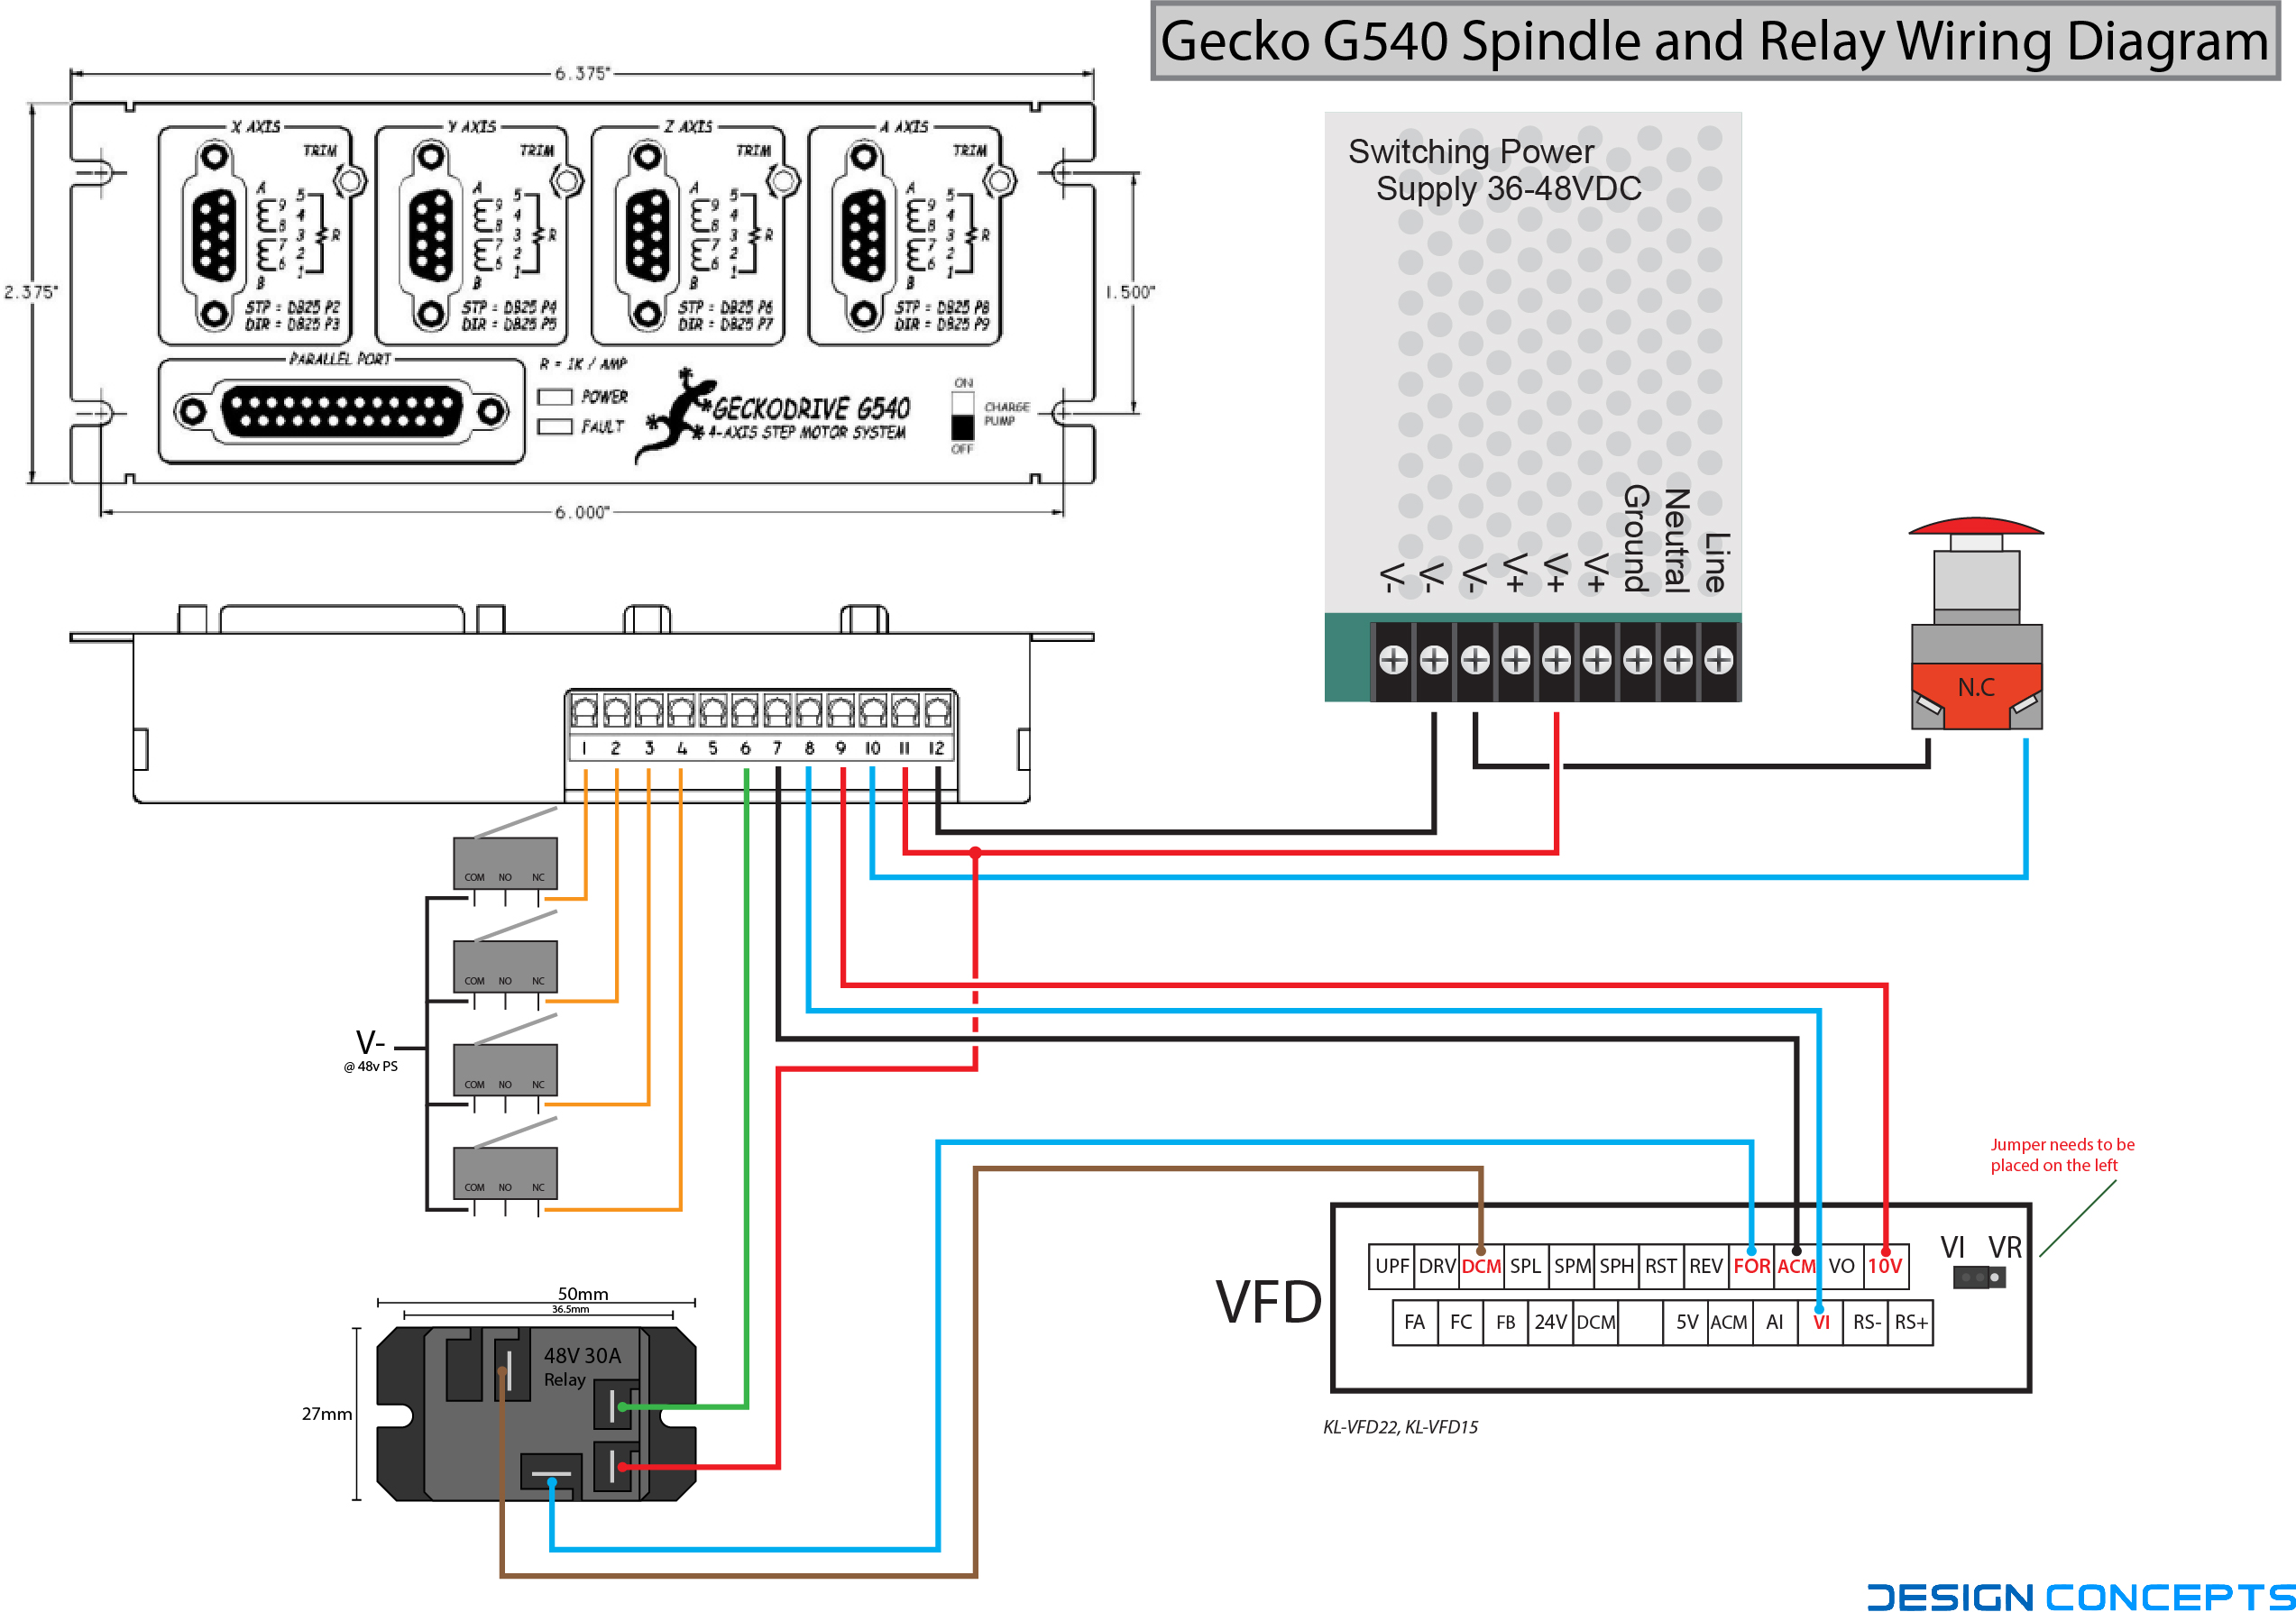 small resolution of gecko g540 wiring diagram wiring diagram world gecko g540 wiring diagram gecko g540 wiring diagram